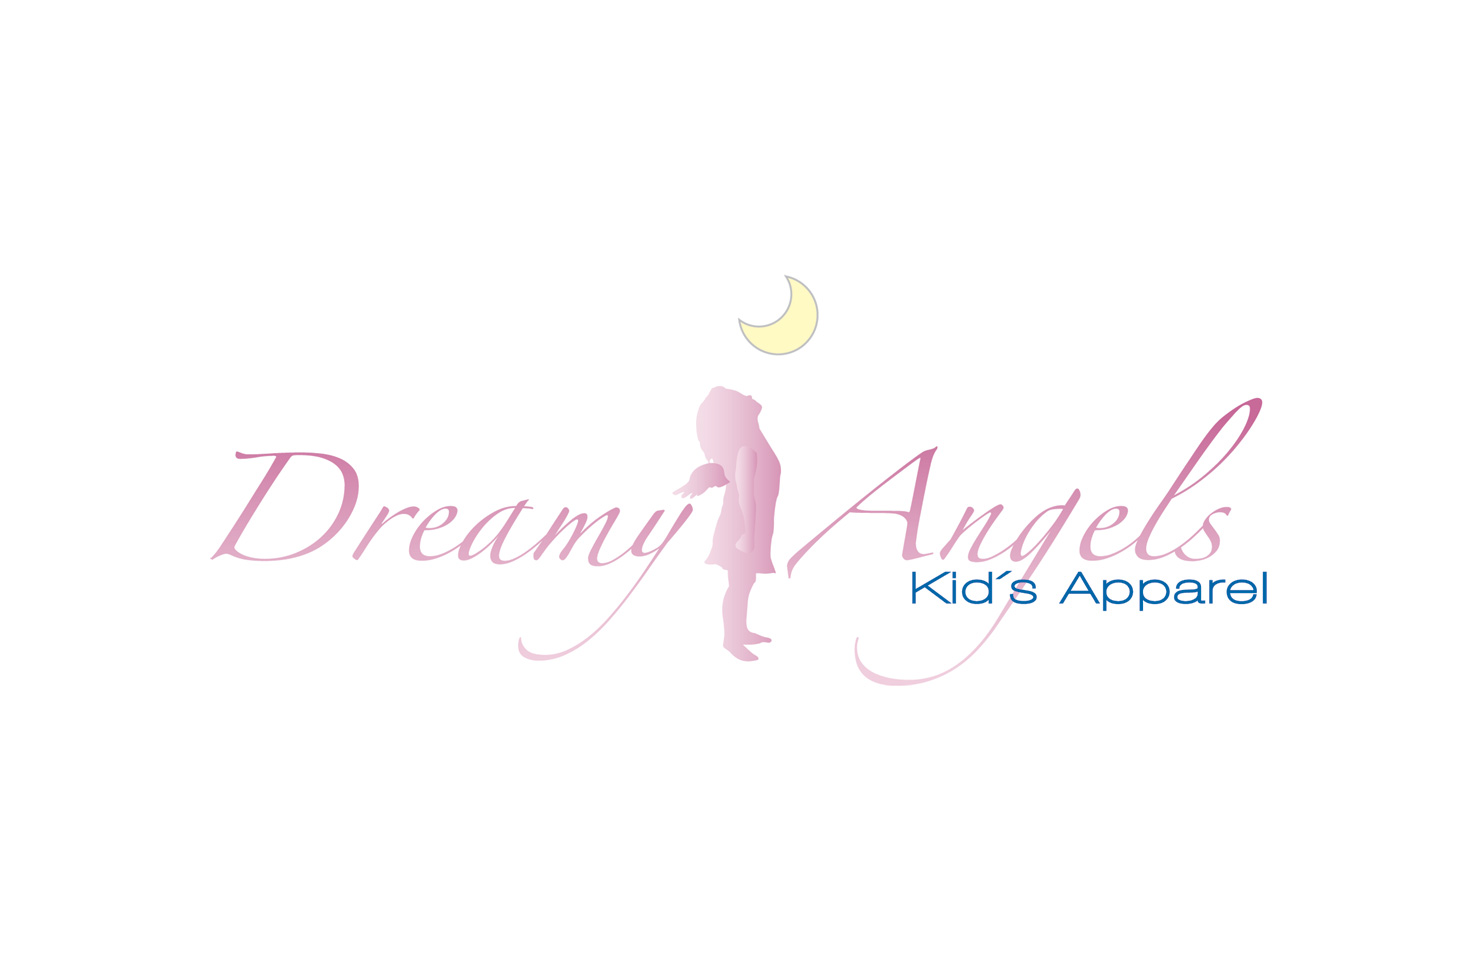 Dreamy-Angel